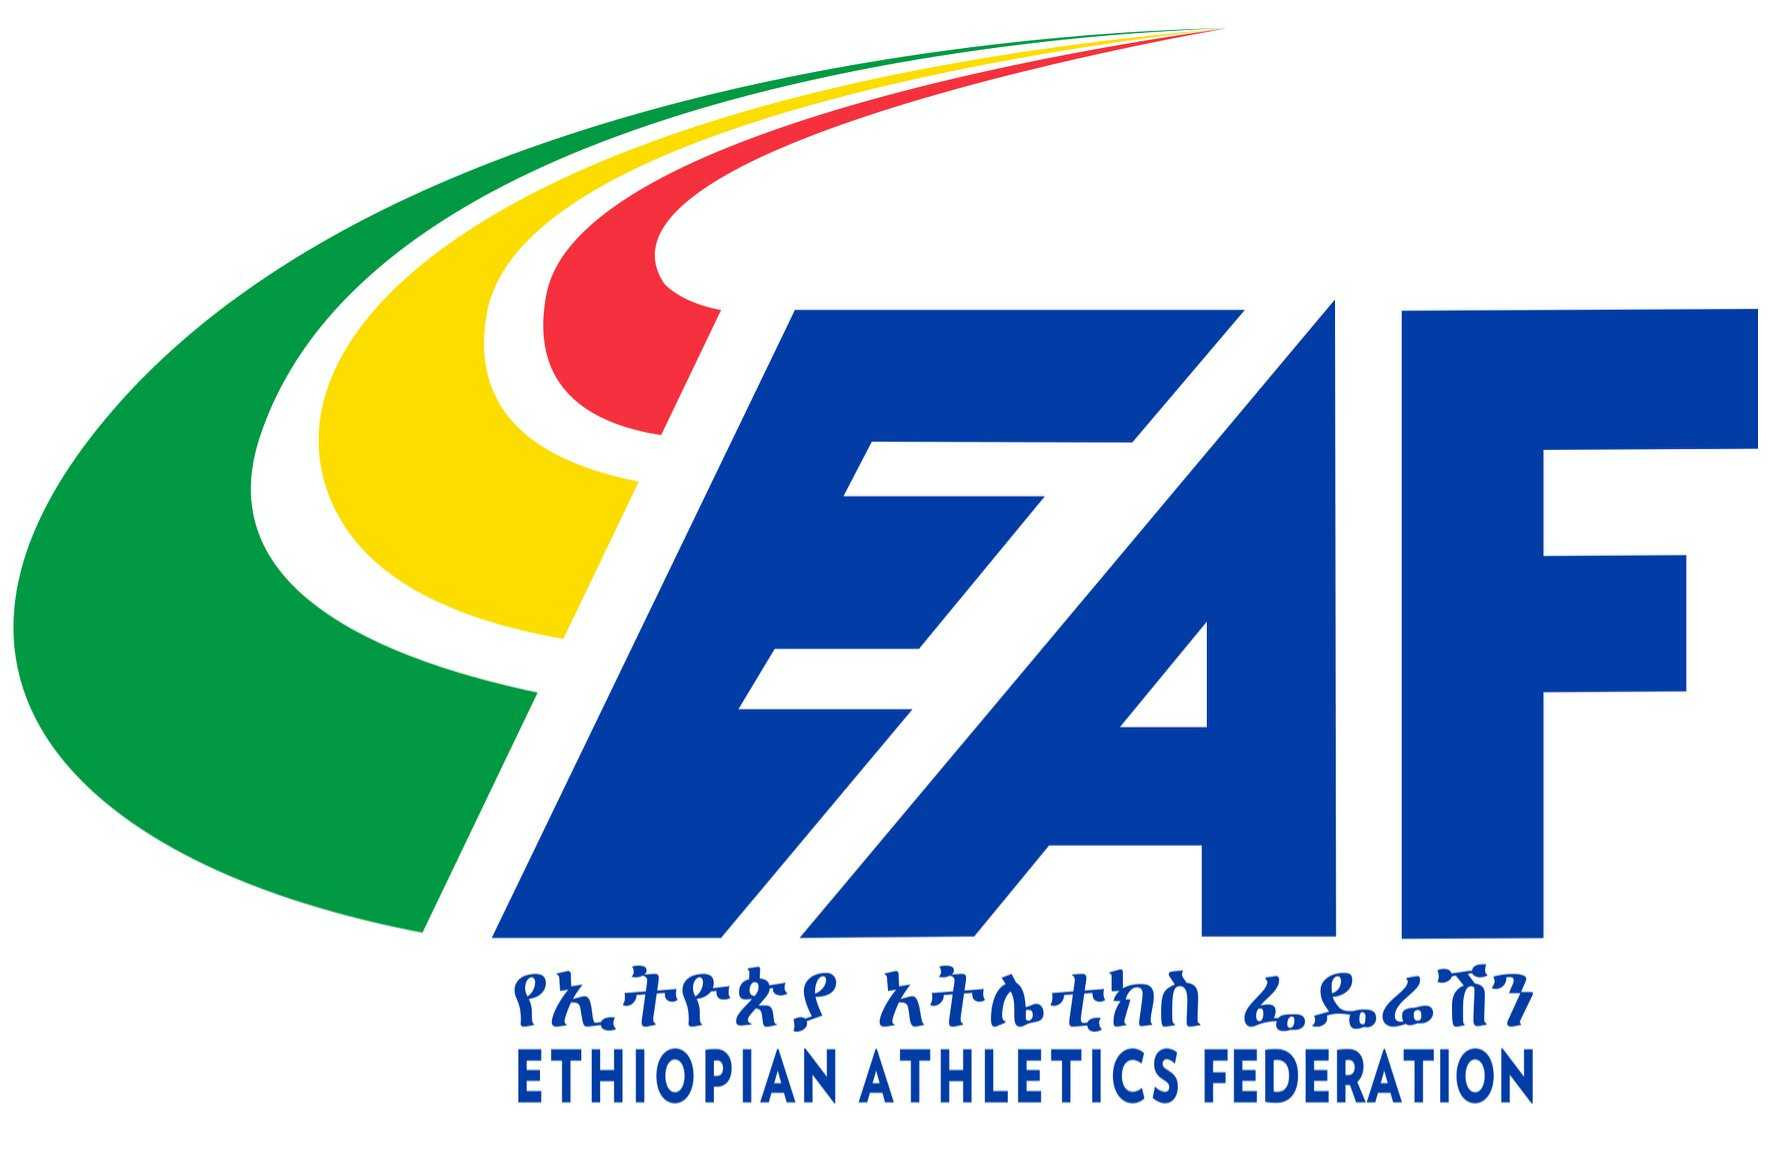 Ethiopian Athletics Federation approves fund to help athletes amid coronavirus pandemic